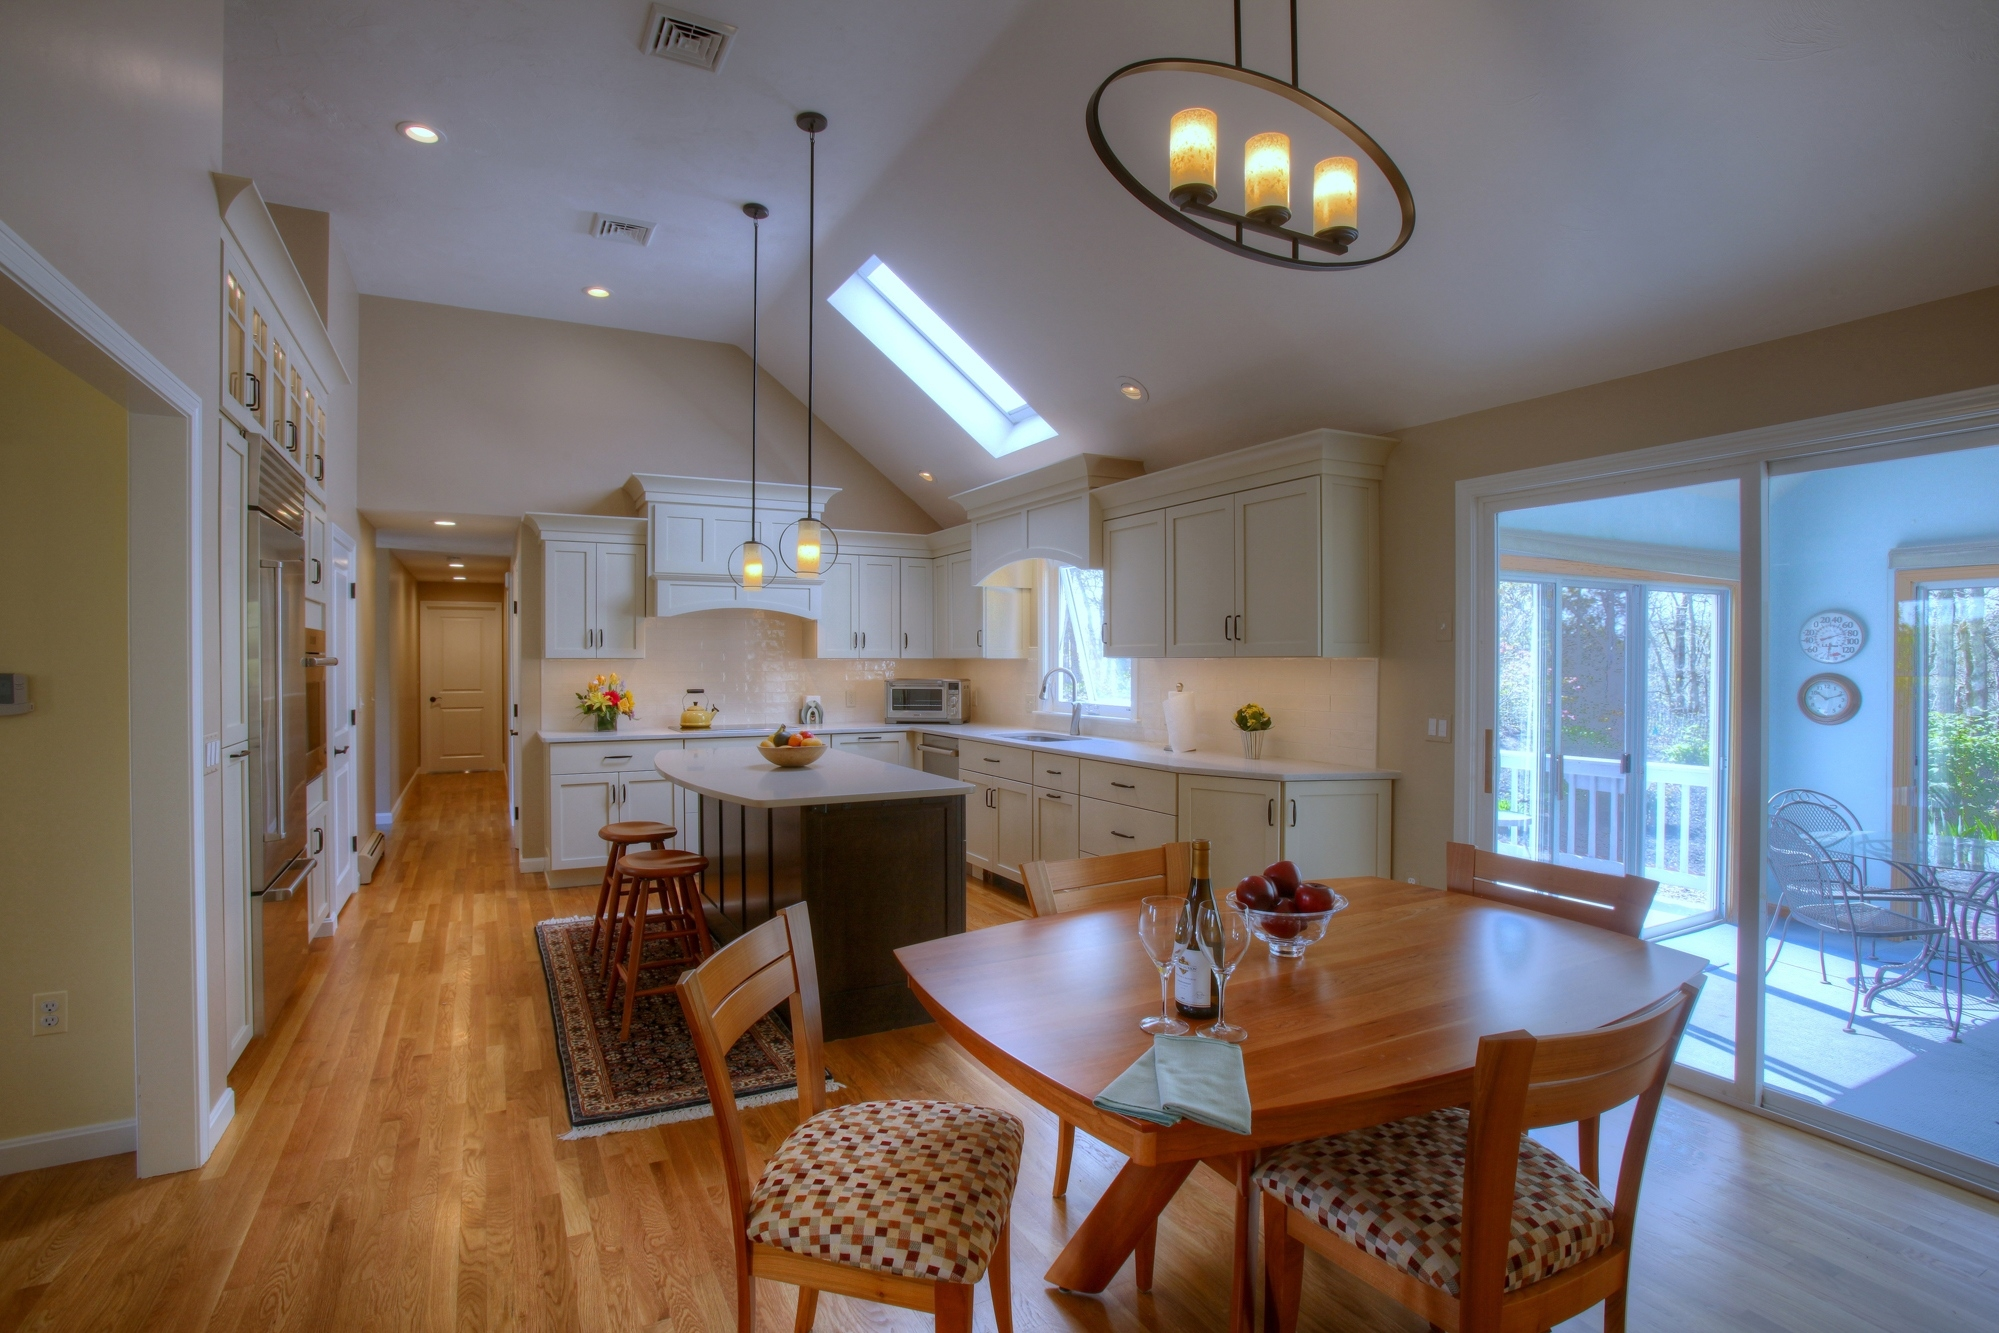 kitchen lighting design | jlc online within Kitchen Lighting Design